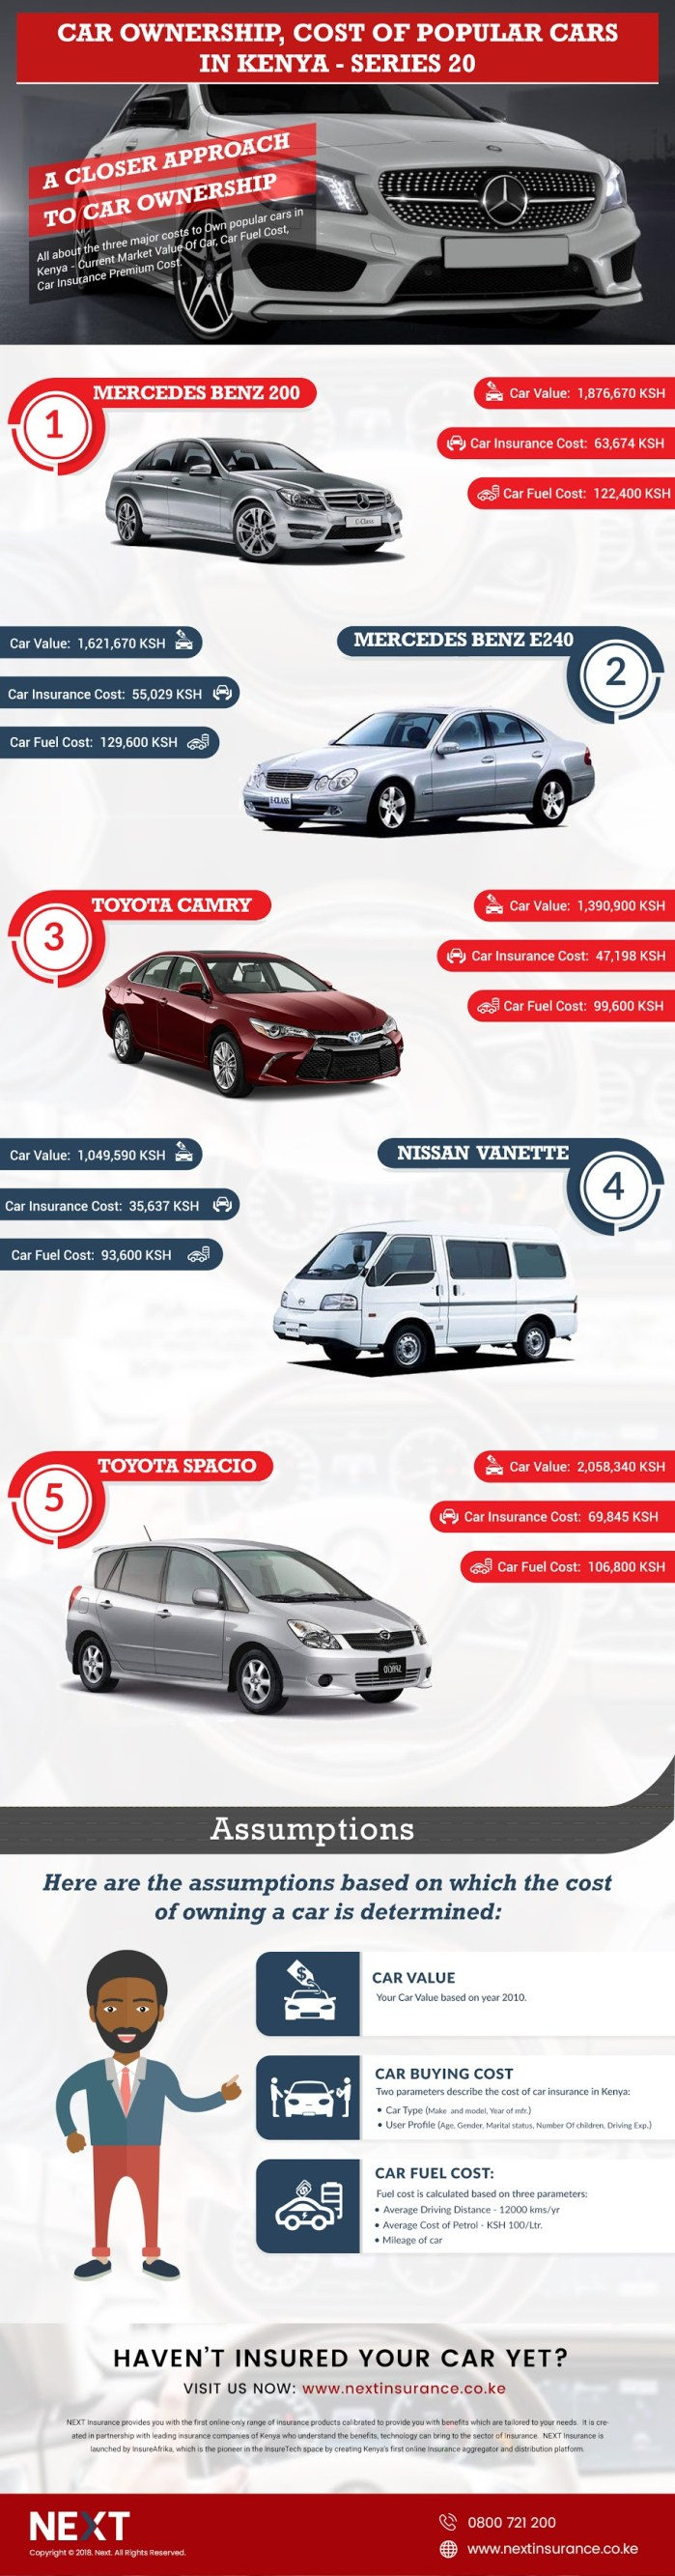 Car Ownership Cost Of Popular Cars In Kenya 🚗 Infographic Series-20